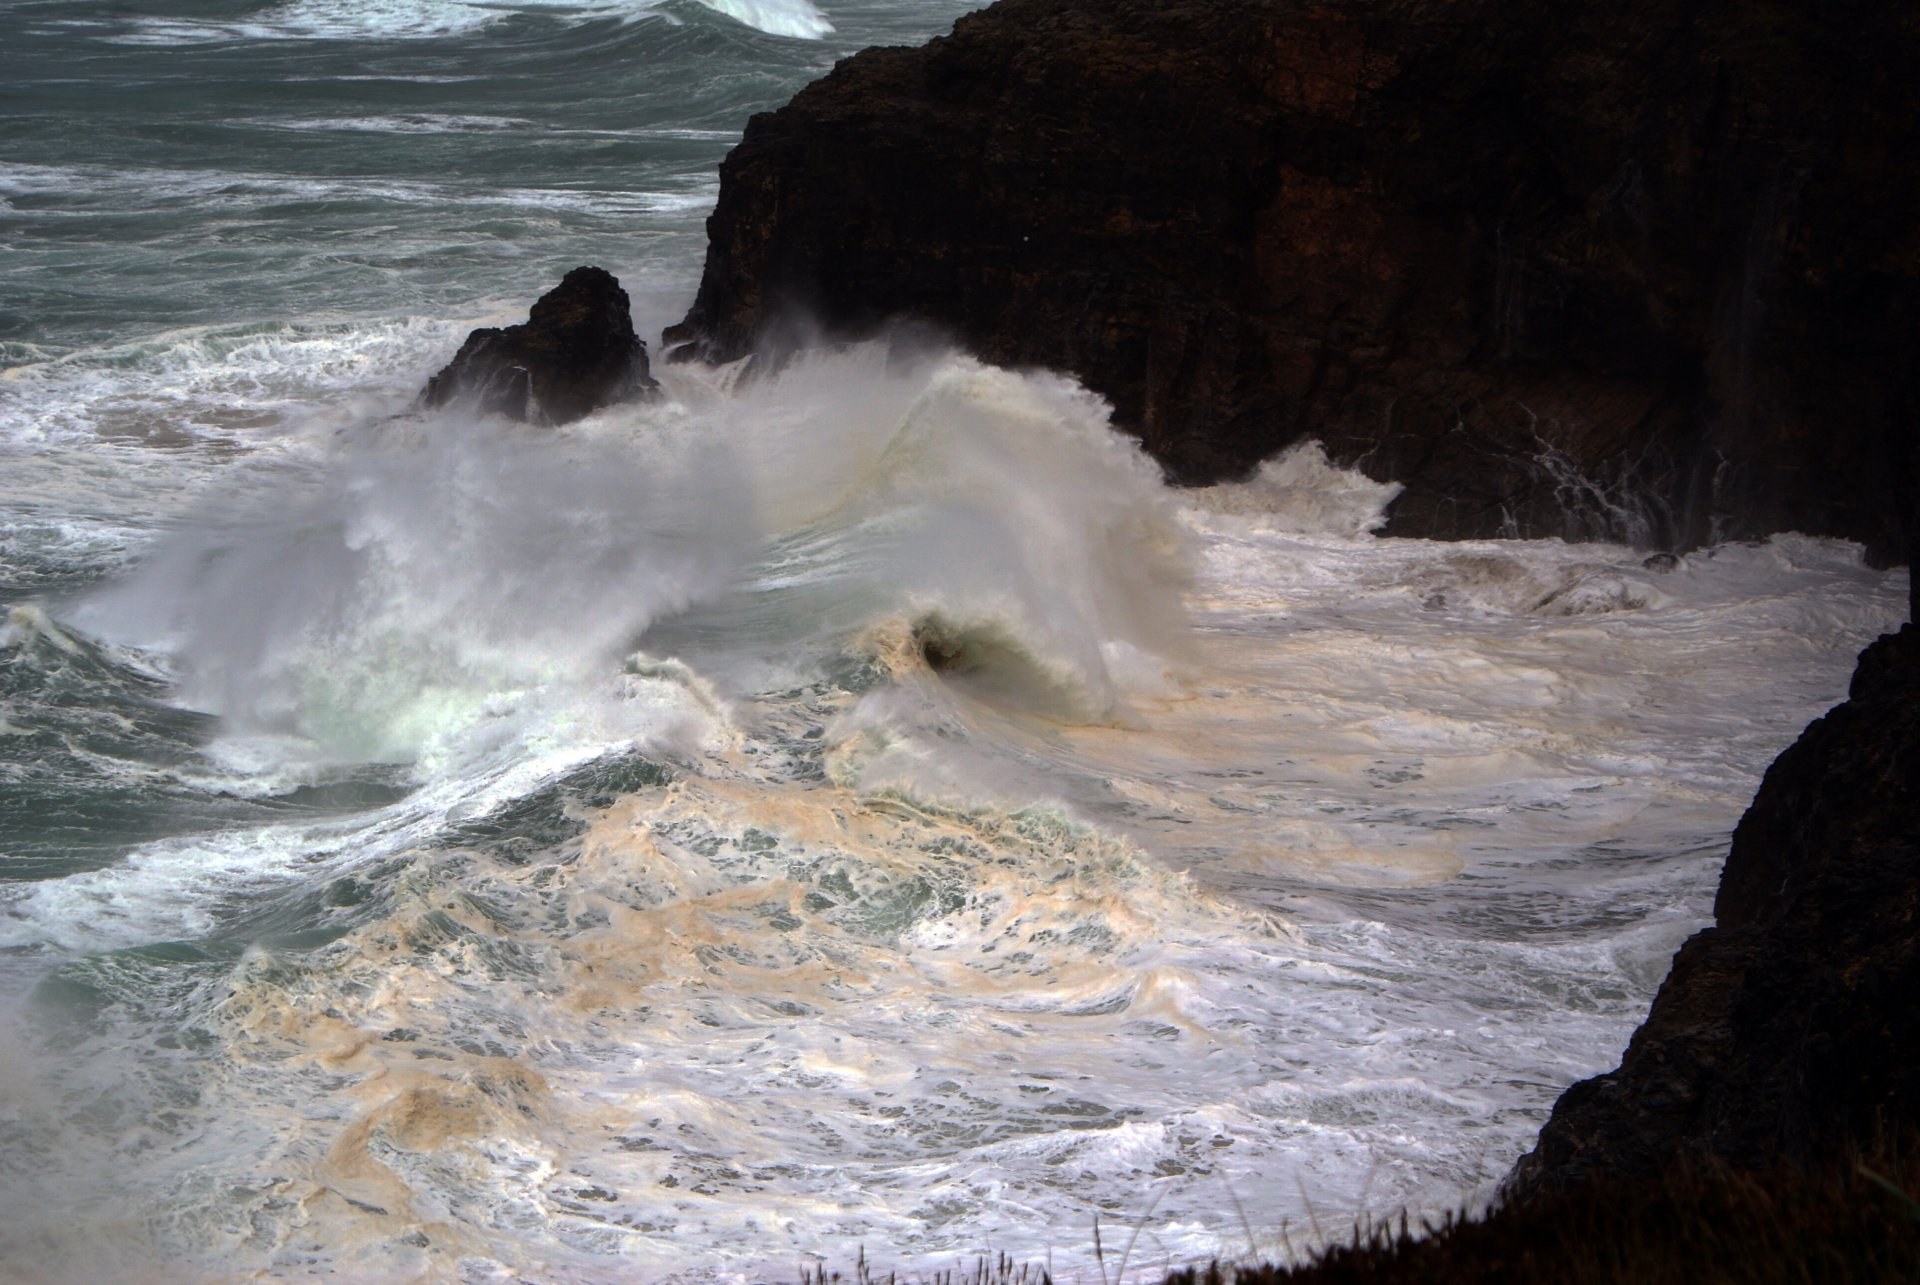 Poontang surfer's photo of Newquay - Fistral South